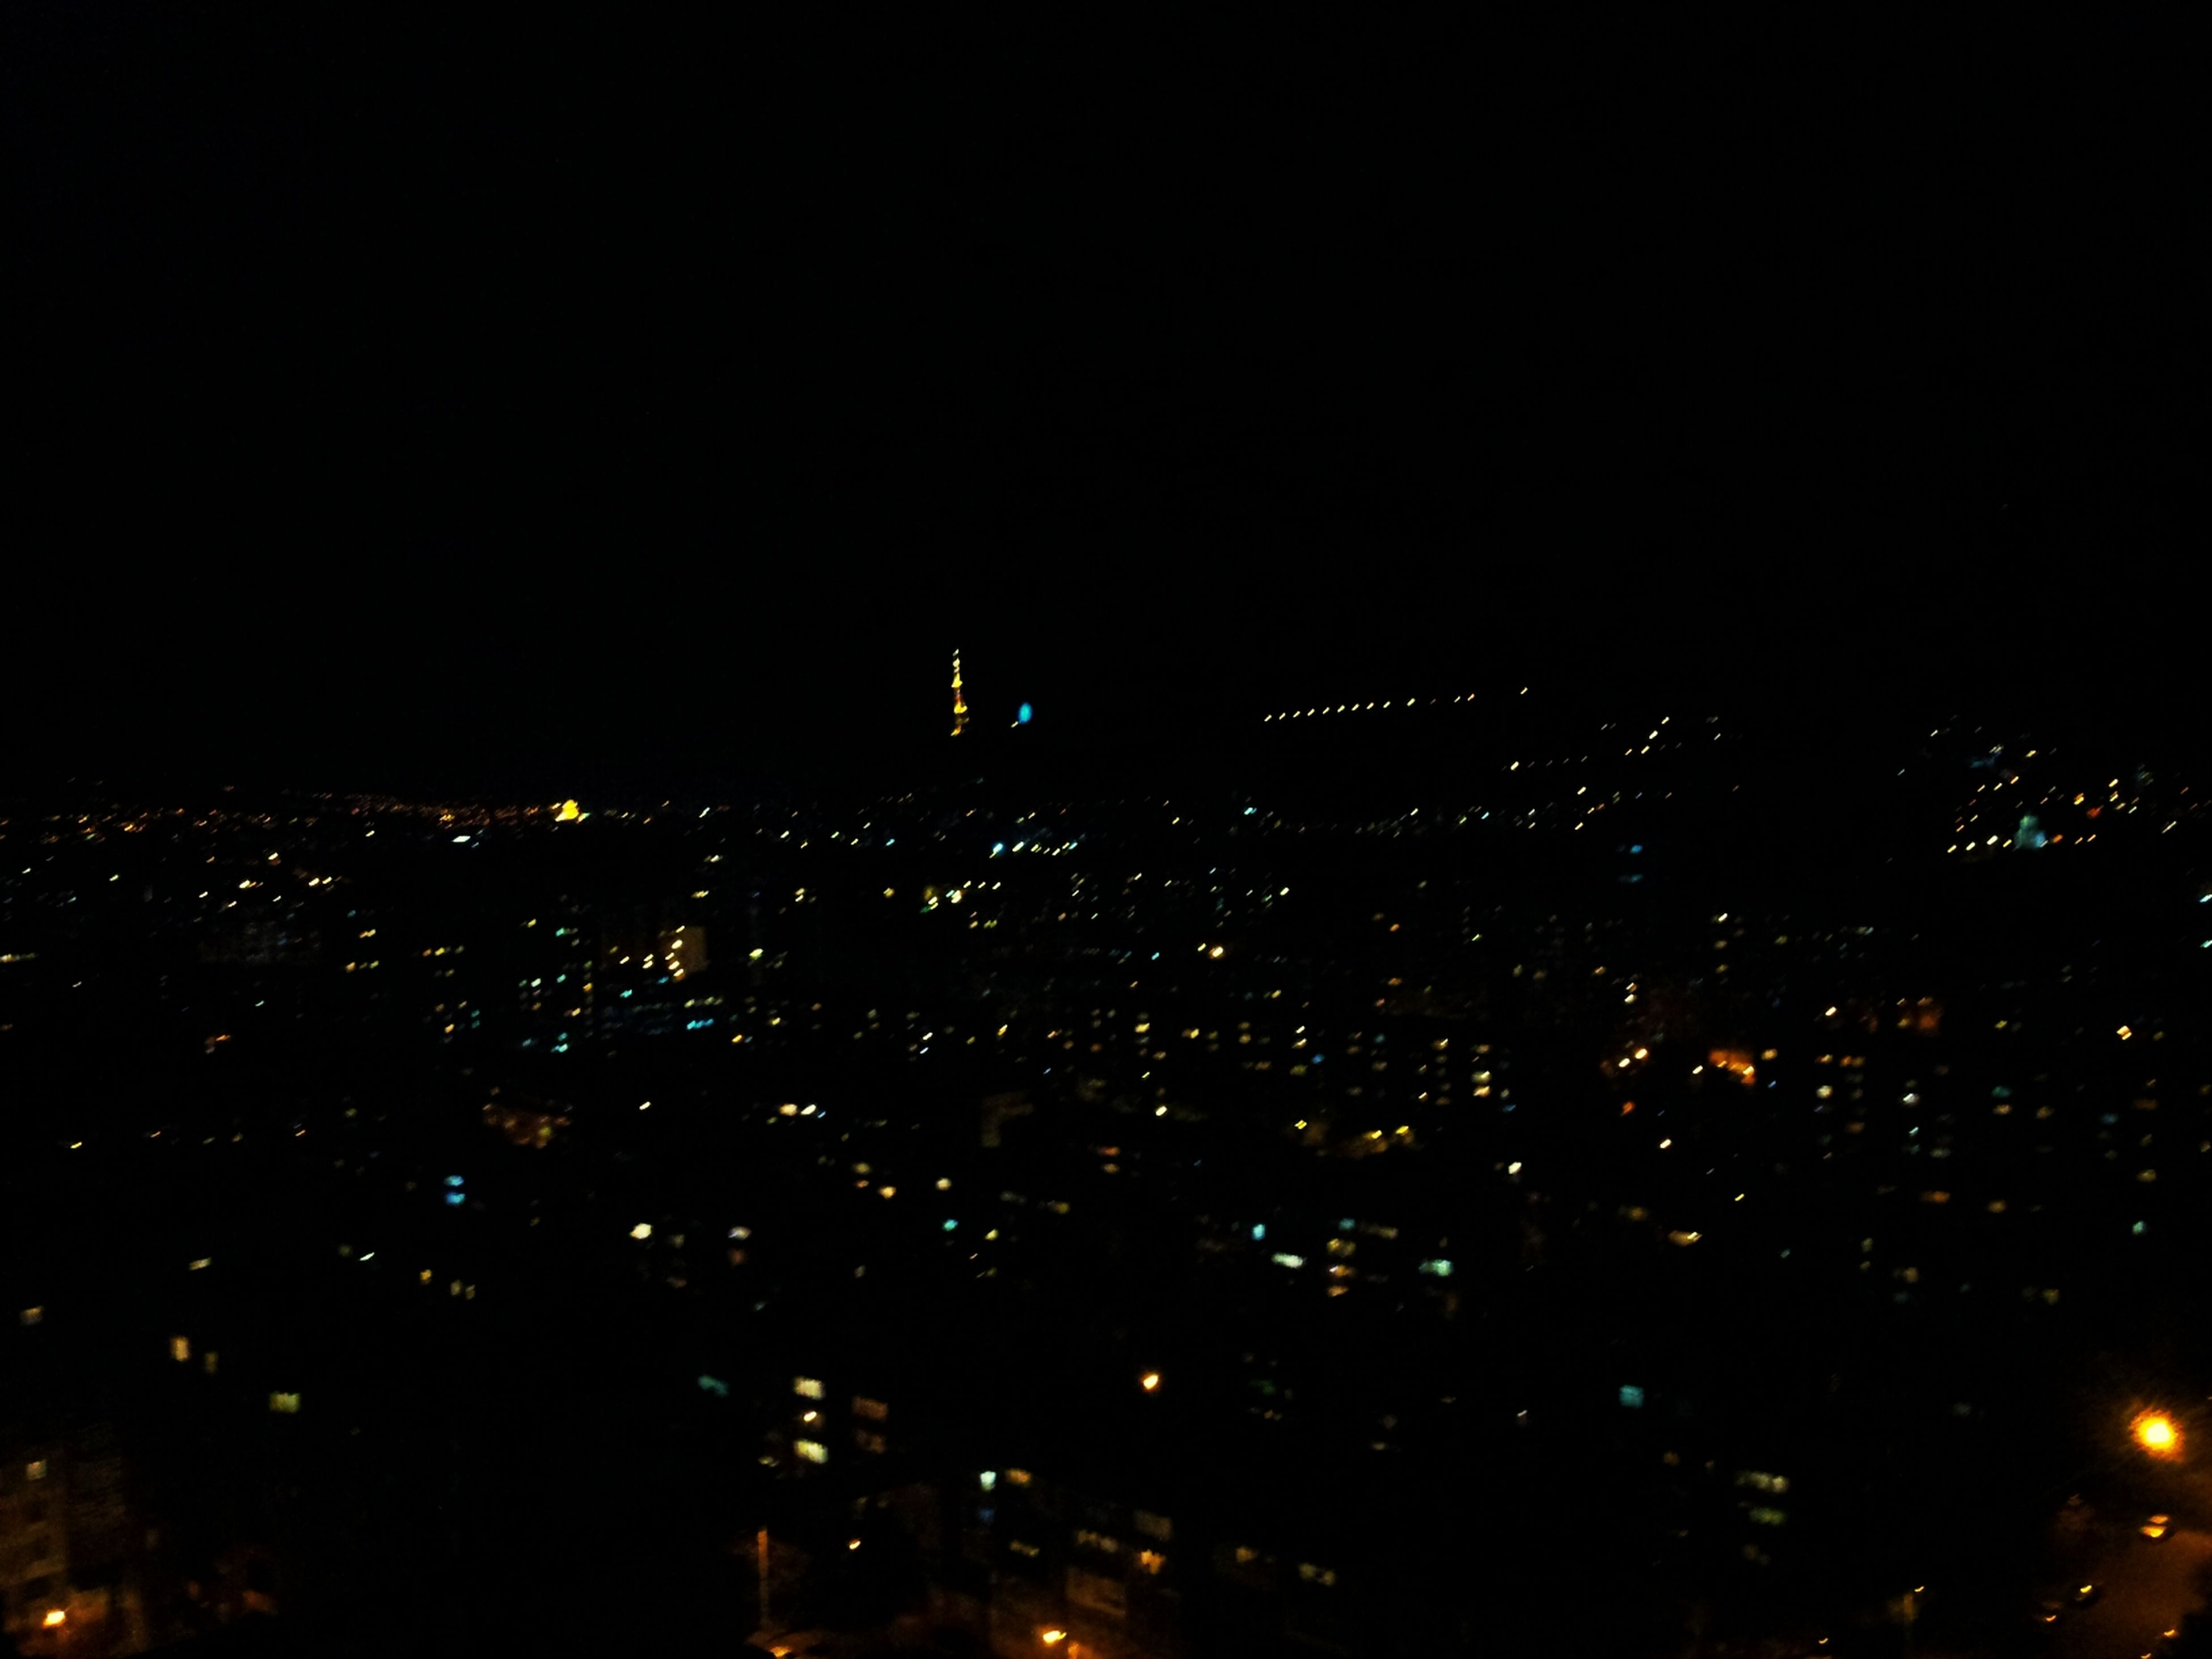 night, illuminated, city, cityscape, building exterior, dark, architecture, copy space, built structure, clear sky, crowded, sky, high angle view, light, glowing, no people, light - natural phenomenon, outdoors, city life, aerial view